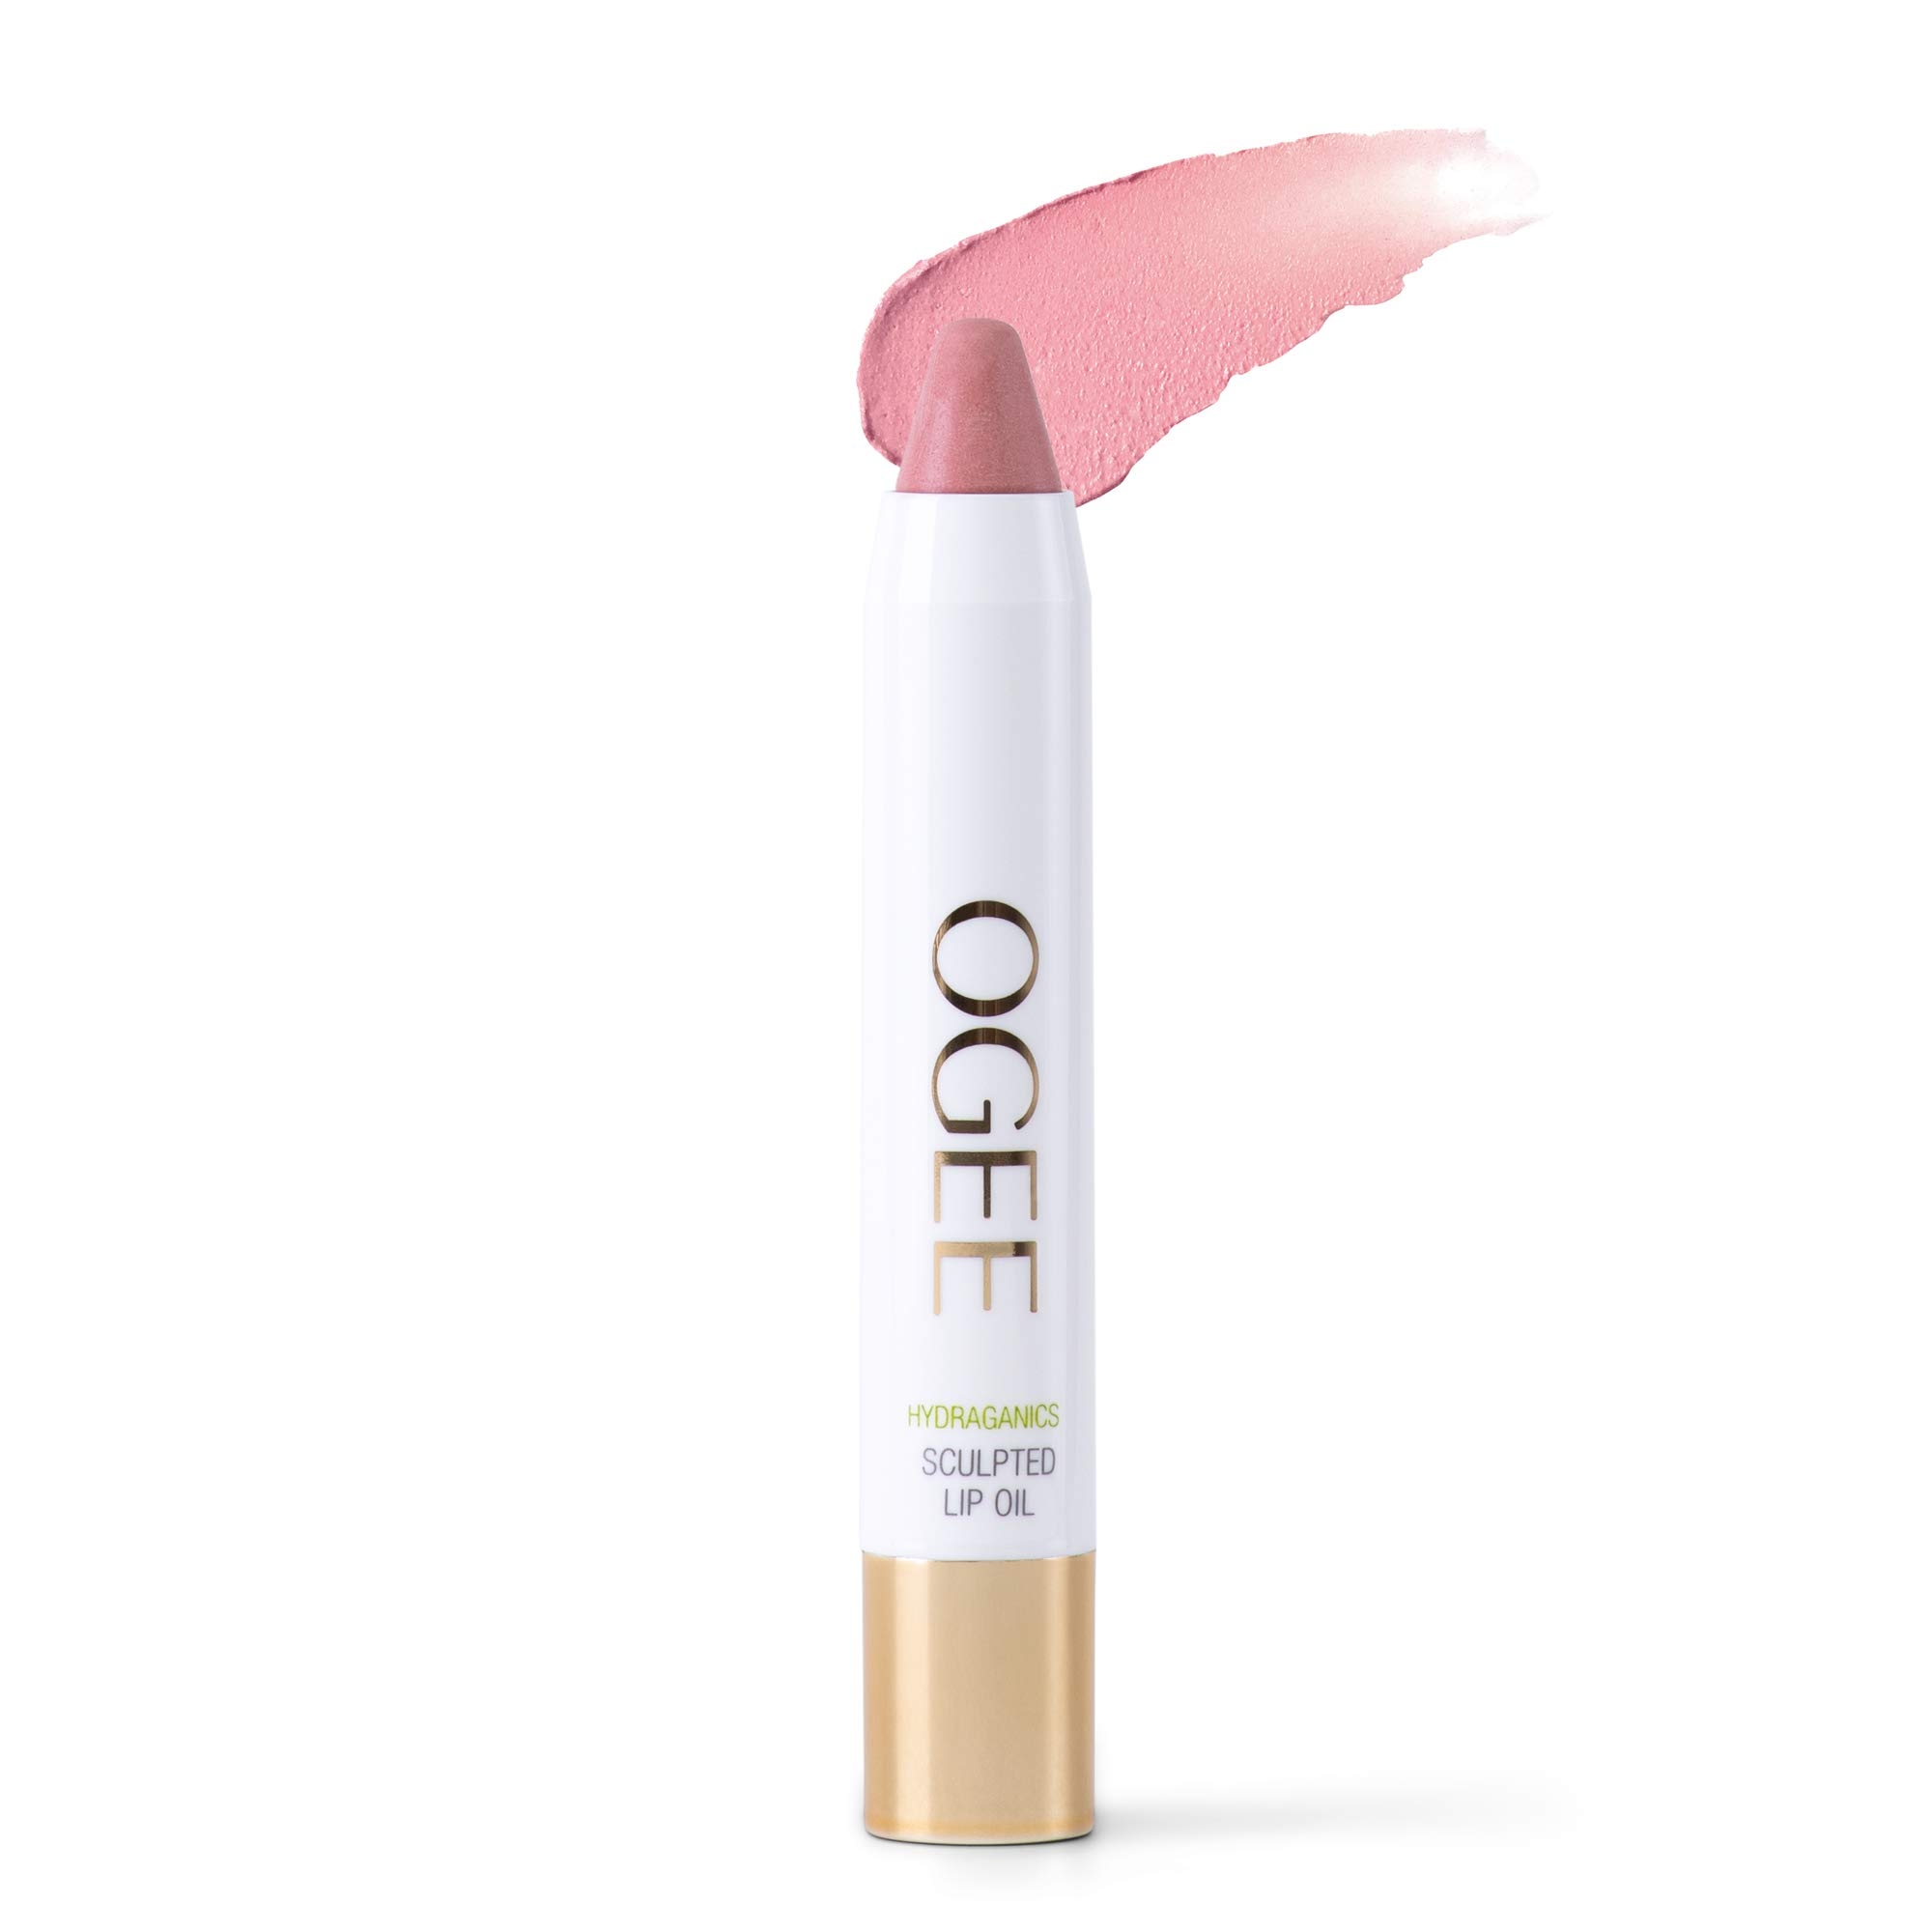 Ogee Sculpted Tinted Lip Oil - Organic & Natural Lip Primer, Moisturizer & Treatment Balm - Magnolia (White Pink Color) by Ogee